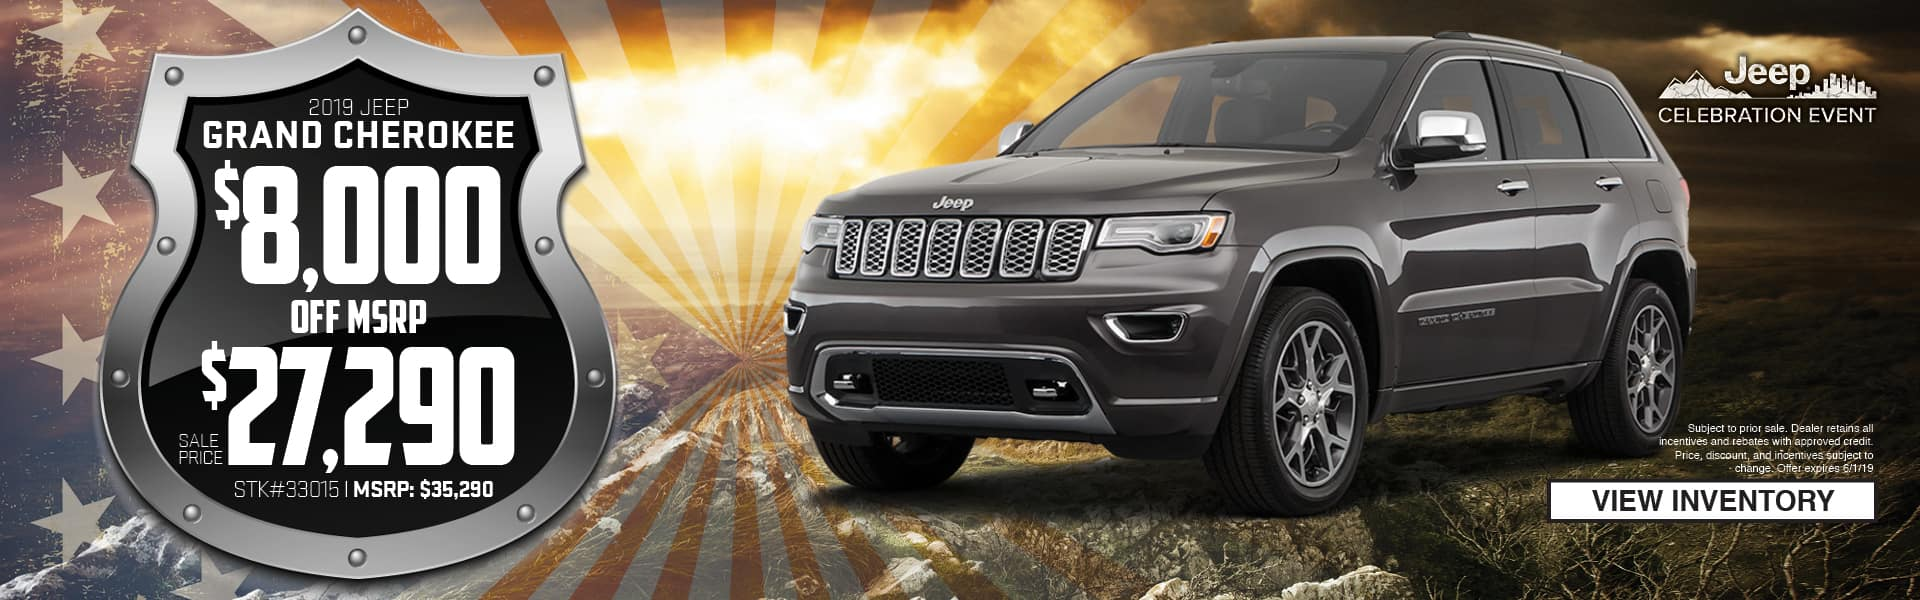 2019 Jeep Cherokee For Sale in Atlanta, Georgia